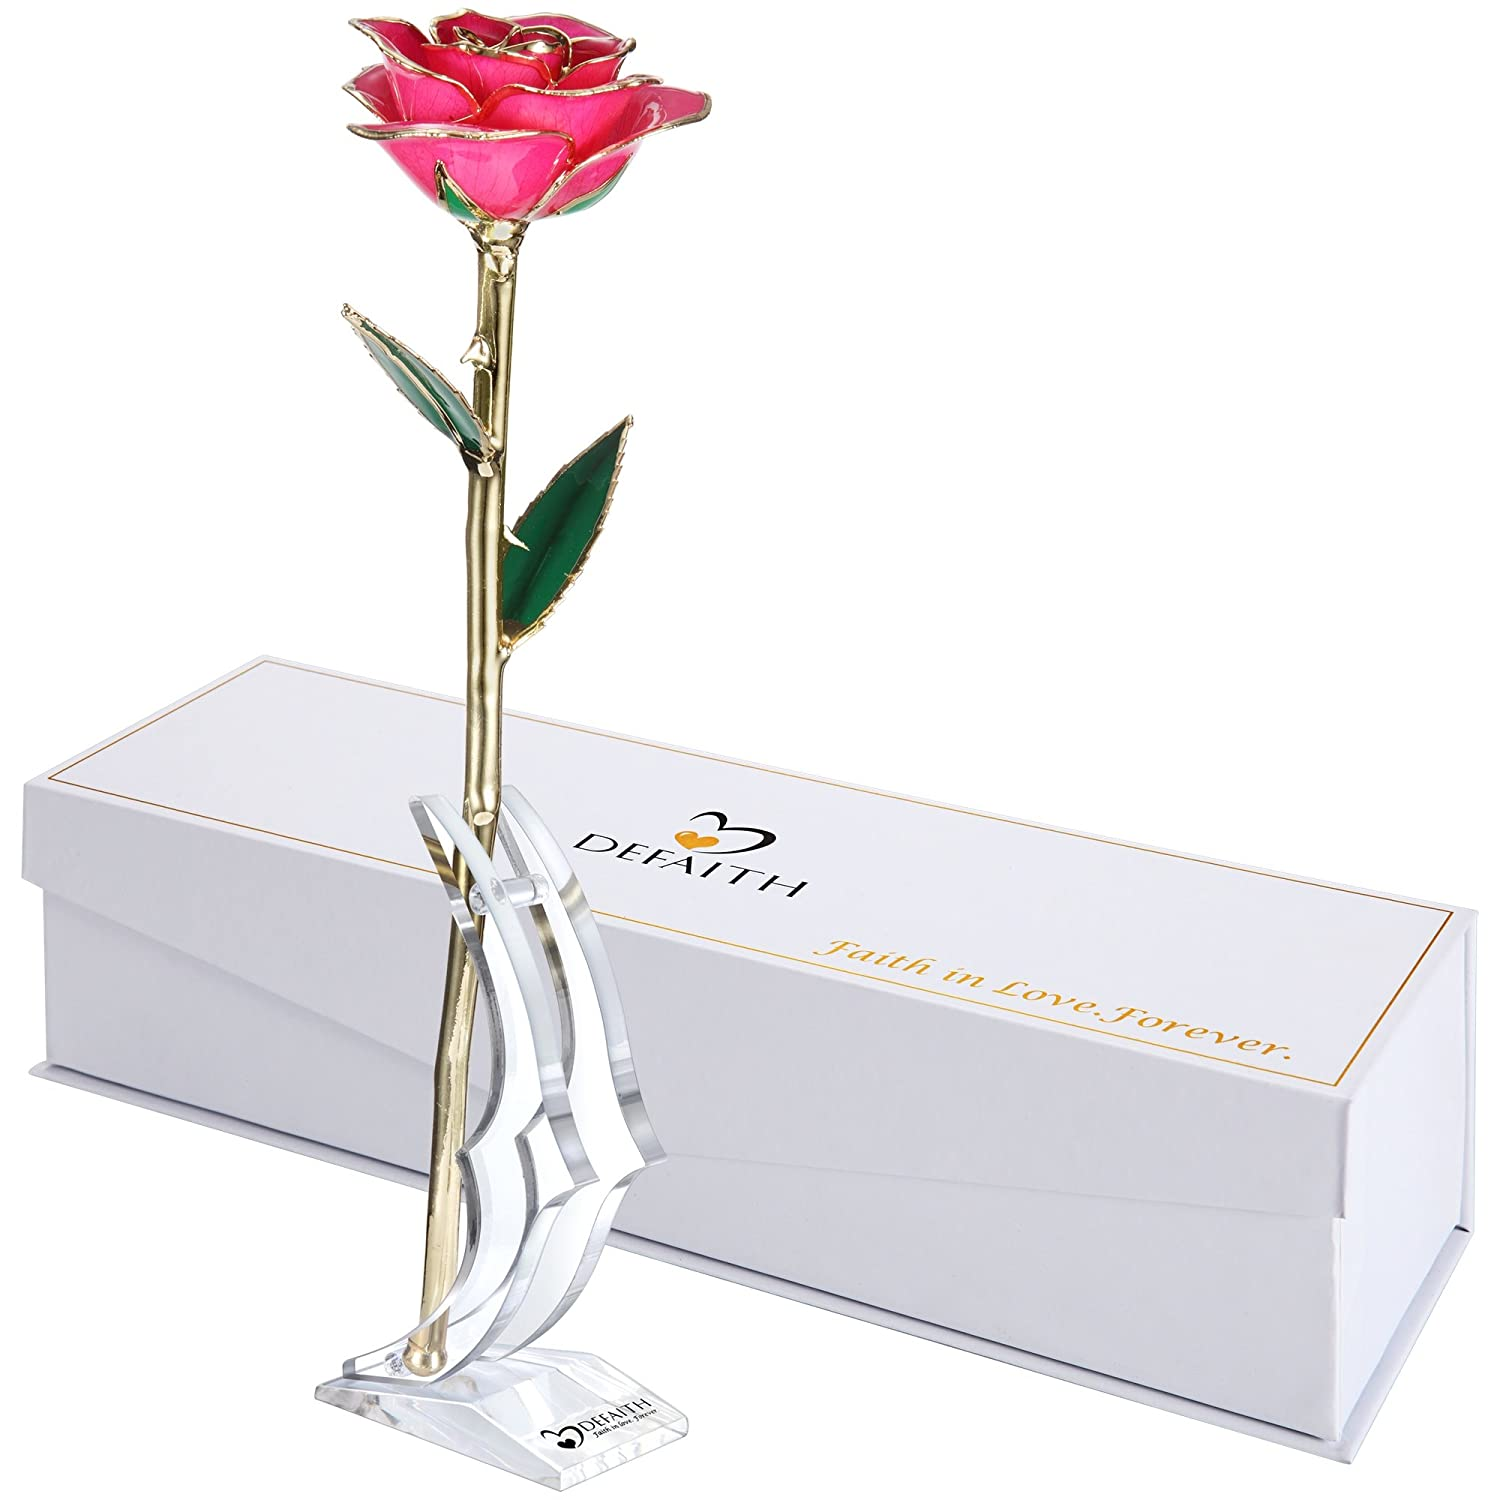 (B.pink) - DeFaith Pink 24K Gold Rose, Unique Anniversary Gifts for Mother Wife Girlfriend Her Women, Made from Real Rose Flower with Stand B014IZ2QZ4 B.Pink